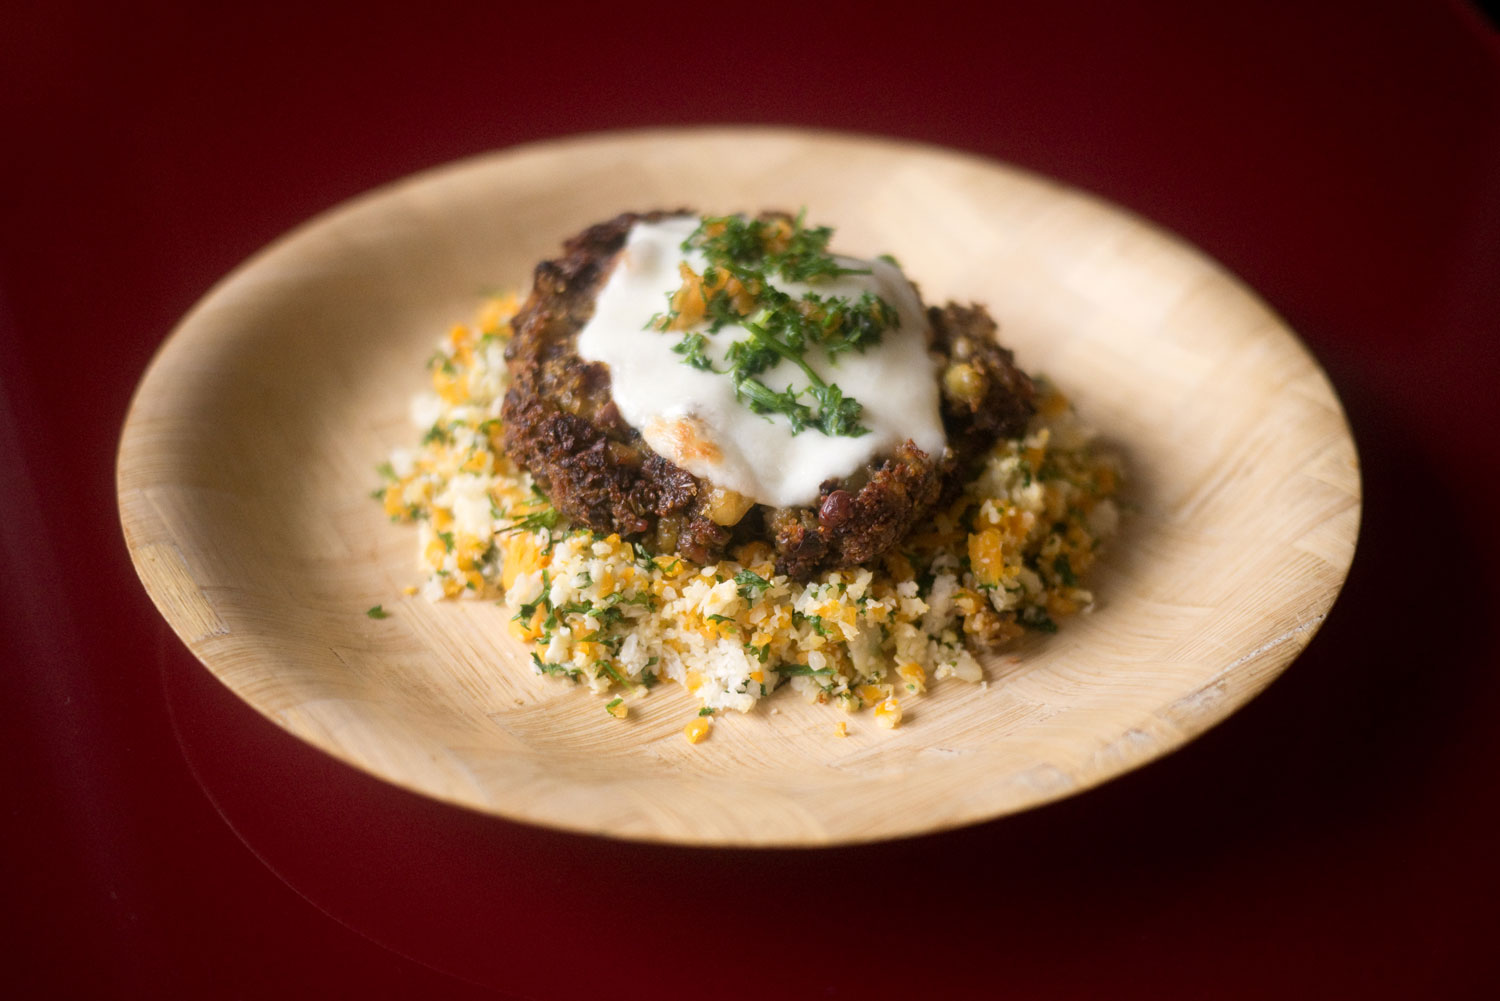 Teff patty on a bed of sautéed cauliflower & pumpkin topped off with parsley and mozzarella.